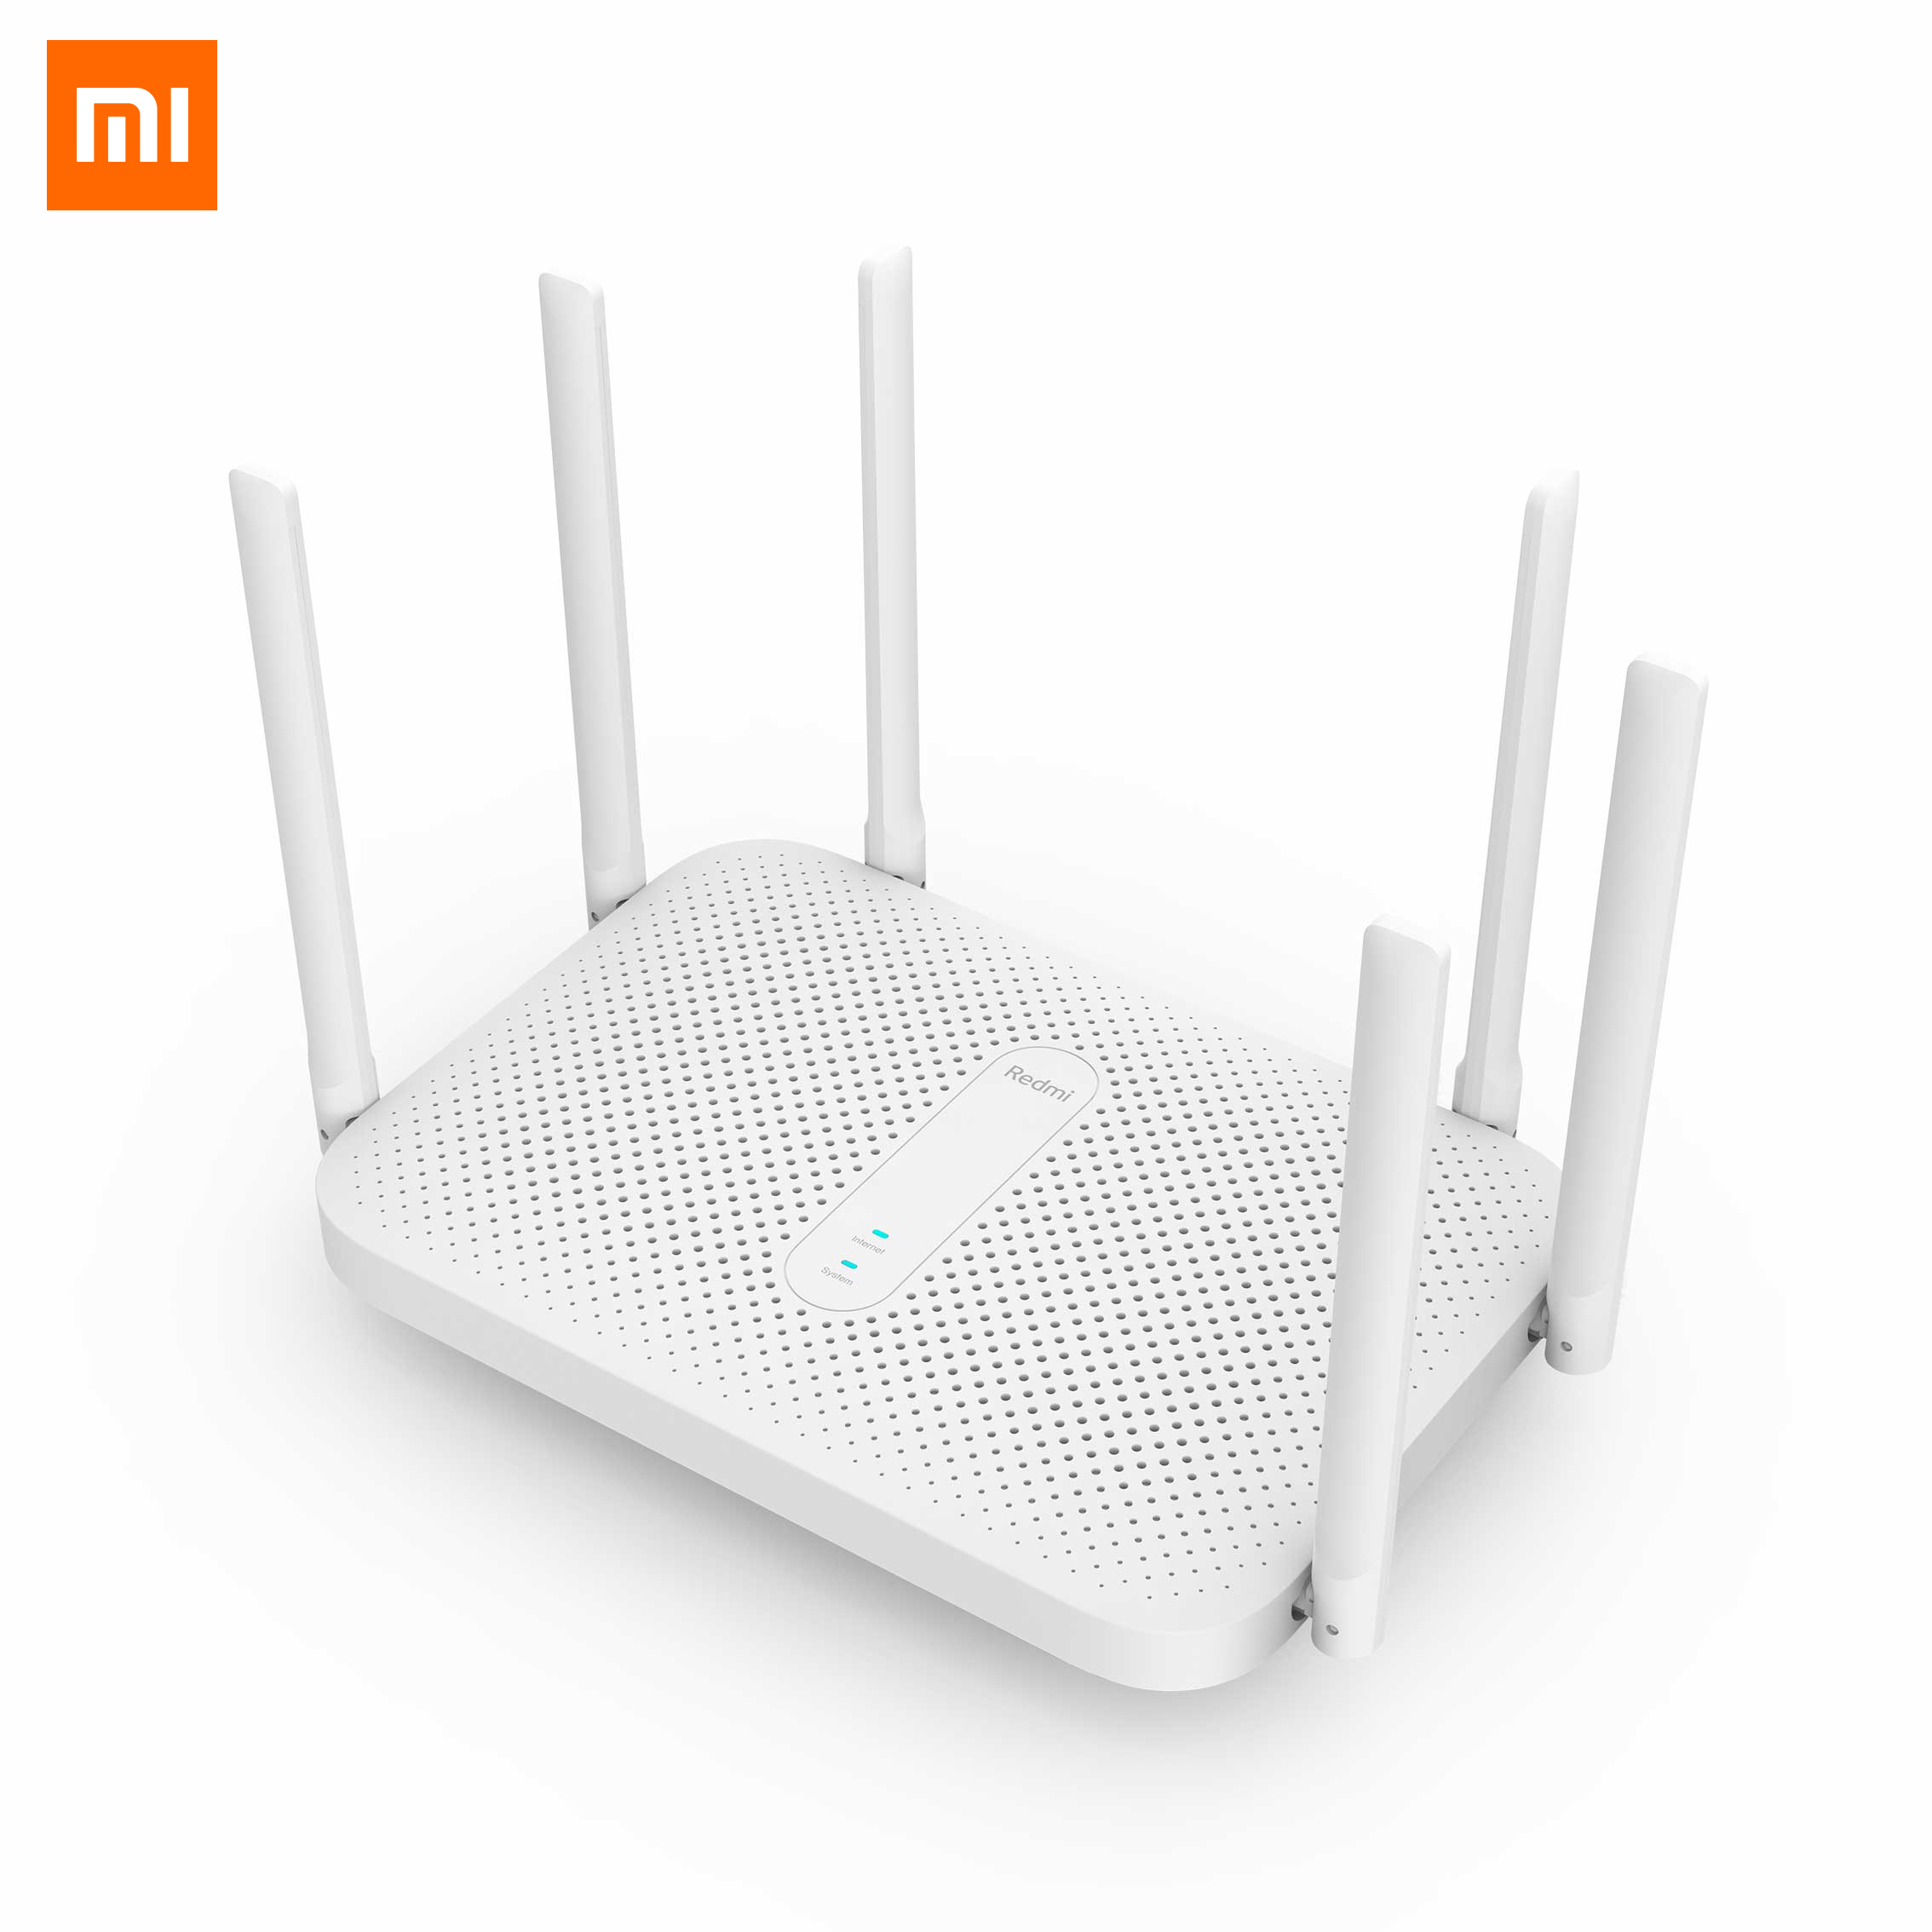 Original Xiaomi Redmi Router AC2100 2.4G 5G Dual Band 2033Mbps Wireless Router 6*High Gain Antennas 128MB OpenWRT WiFi Router